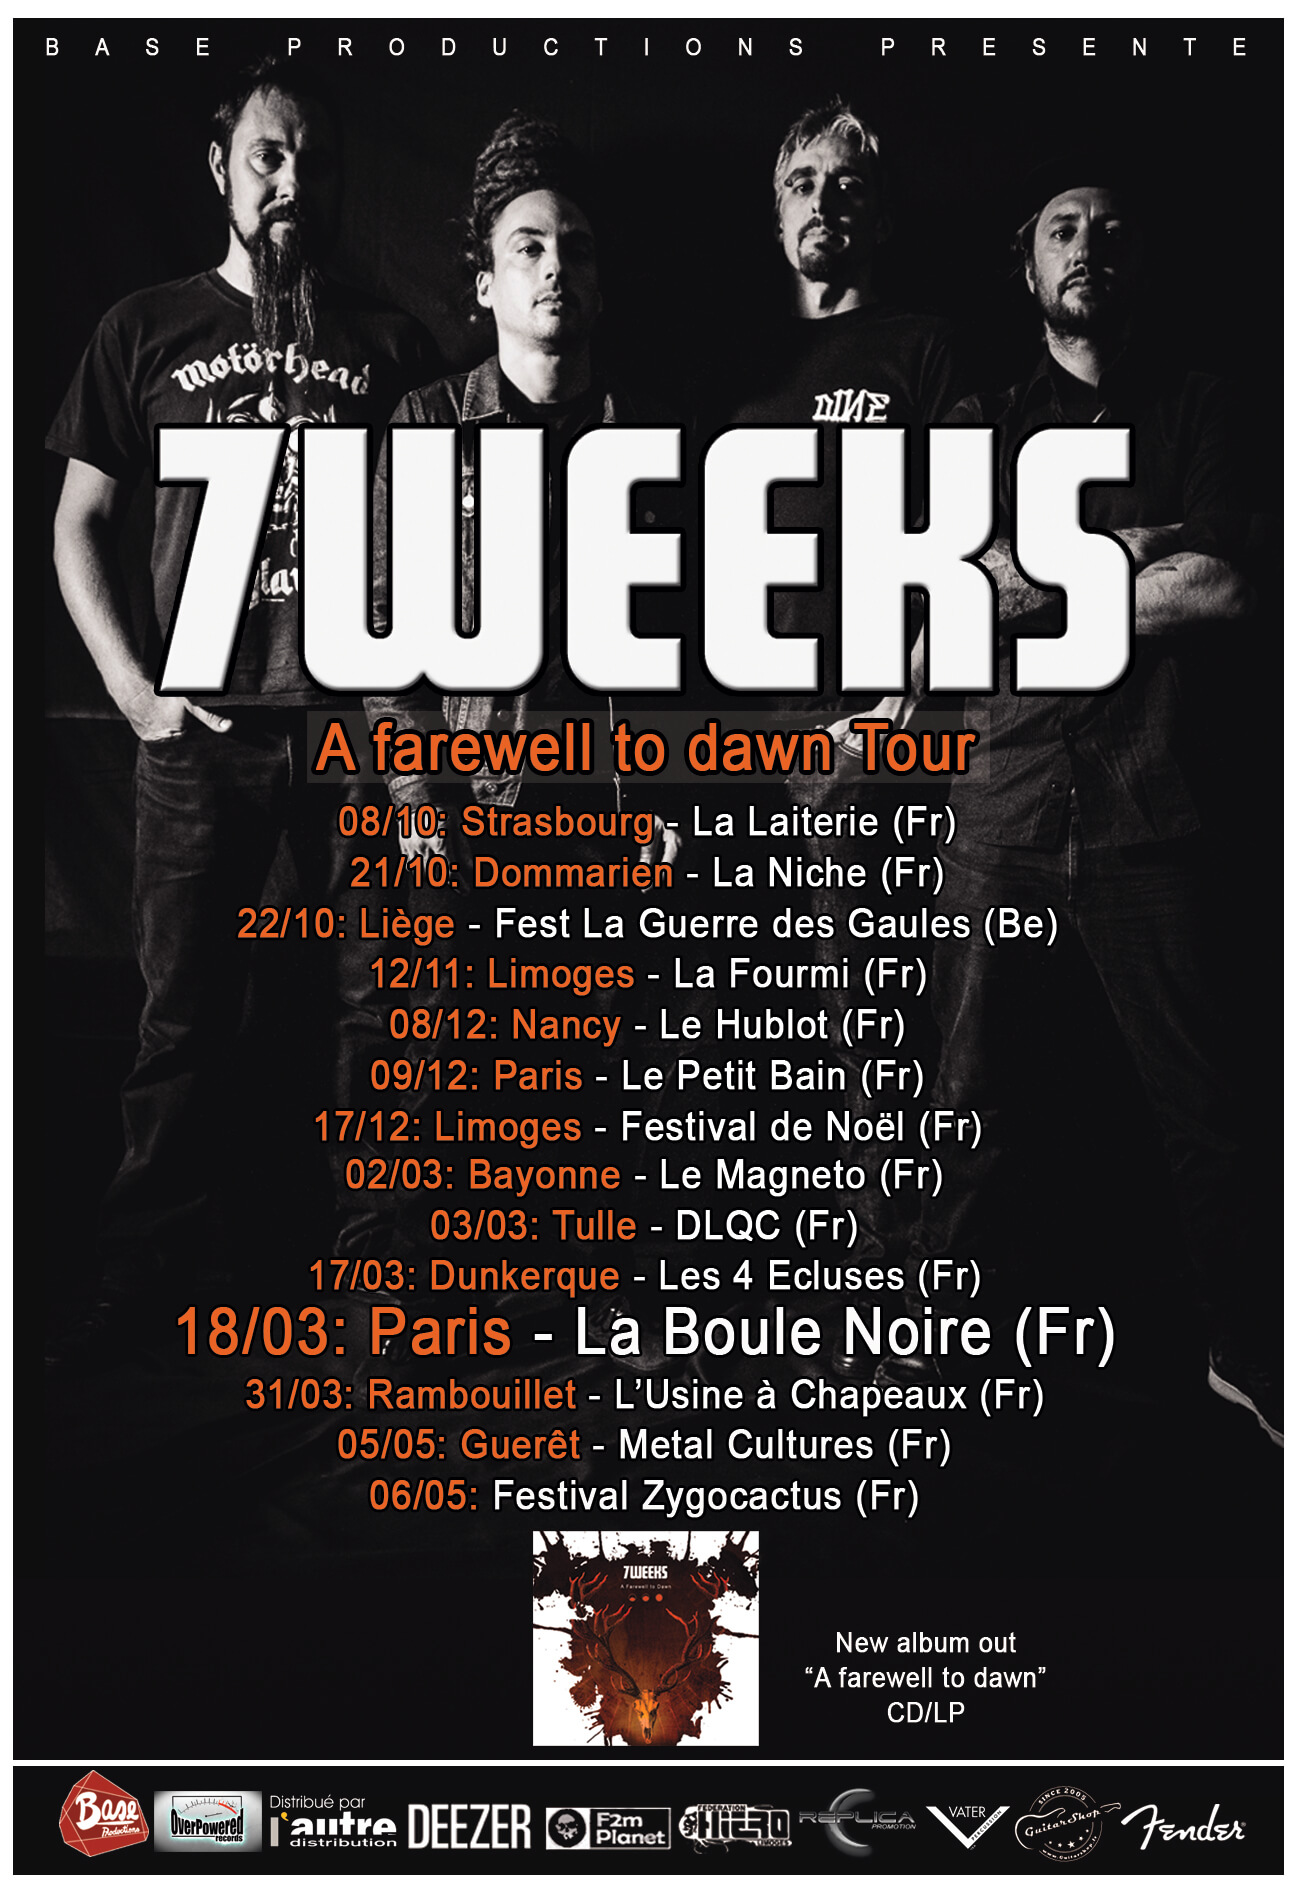 7weeks tour